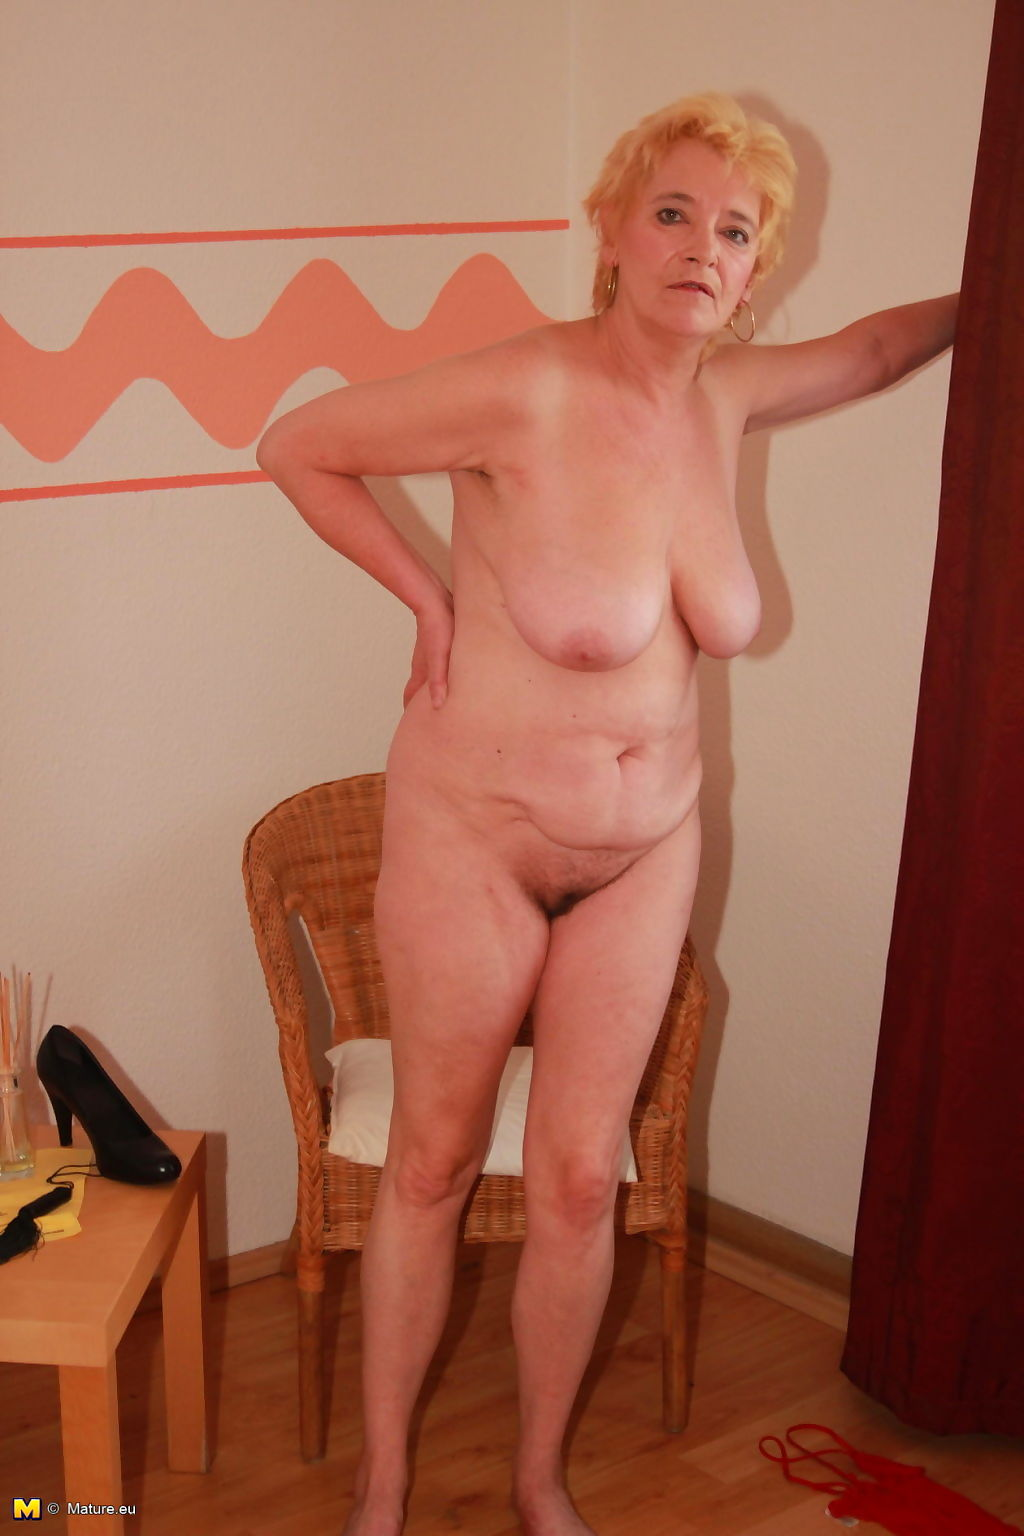 Naughty mature lady playing all alone - part 2138